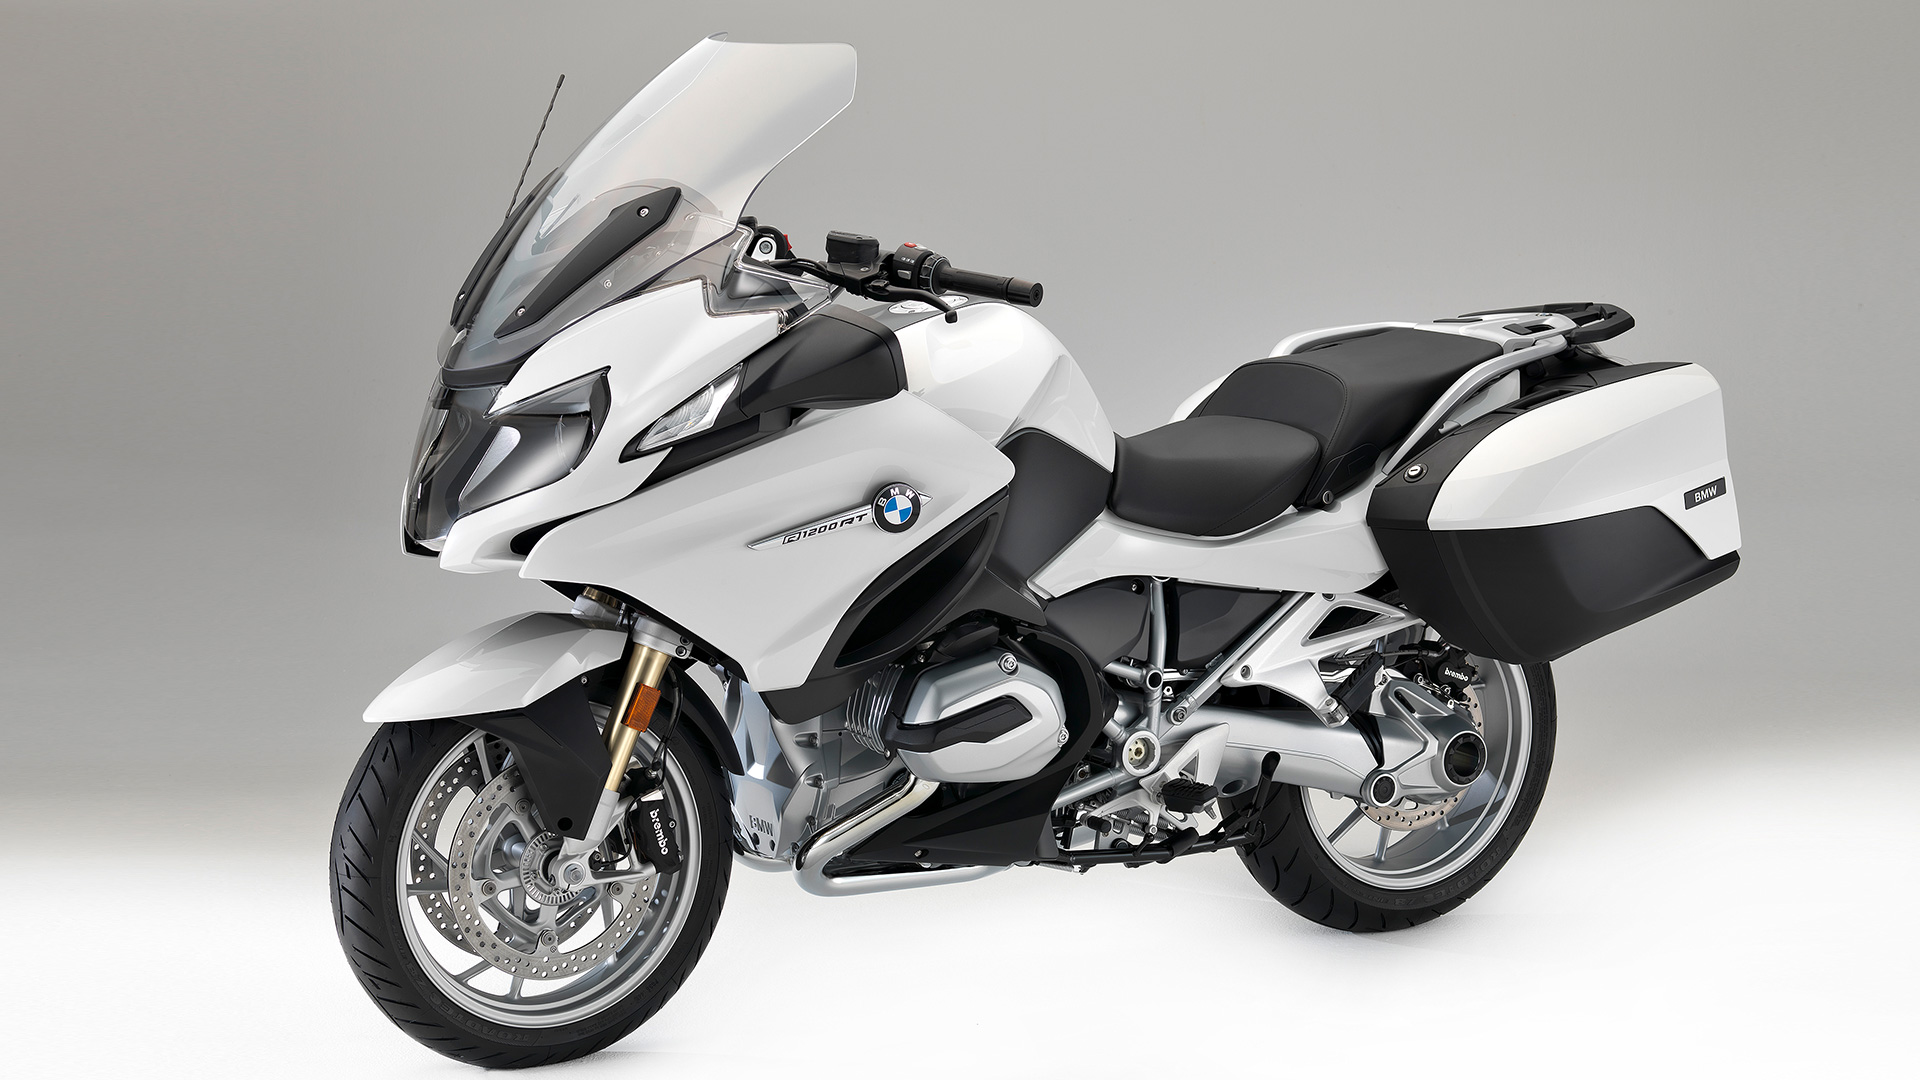 bmw r 1200 rt 2017 standard price mileage reviews specification gallery overdrive. Black Bedroom Furniture Sets. Home Design Ideas